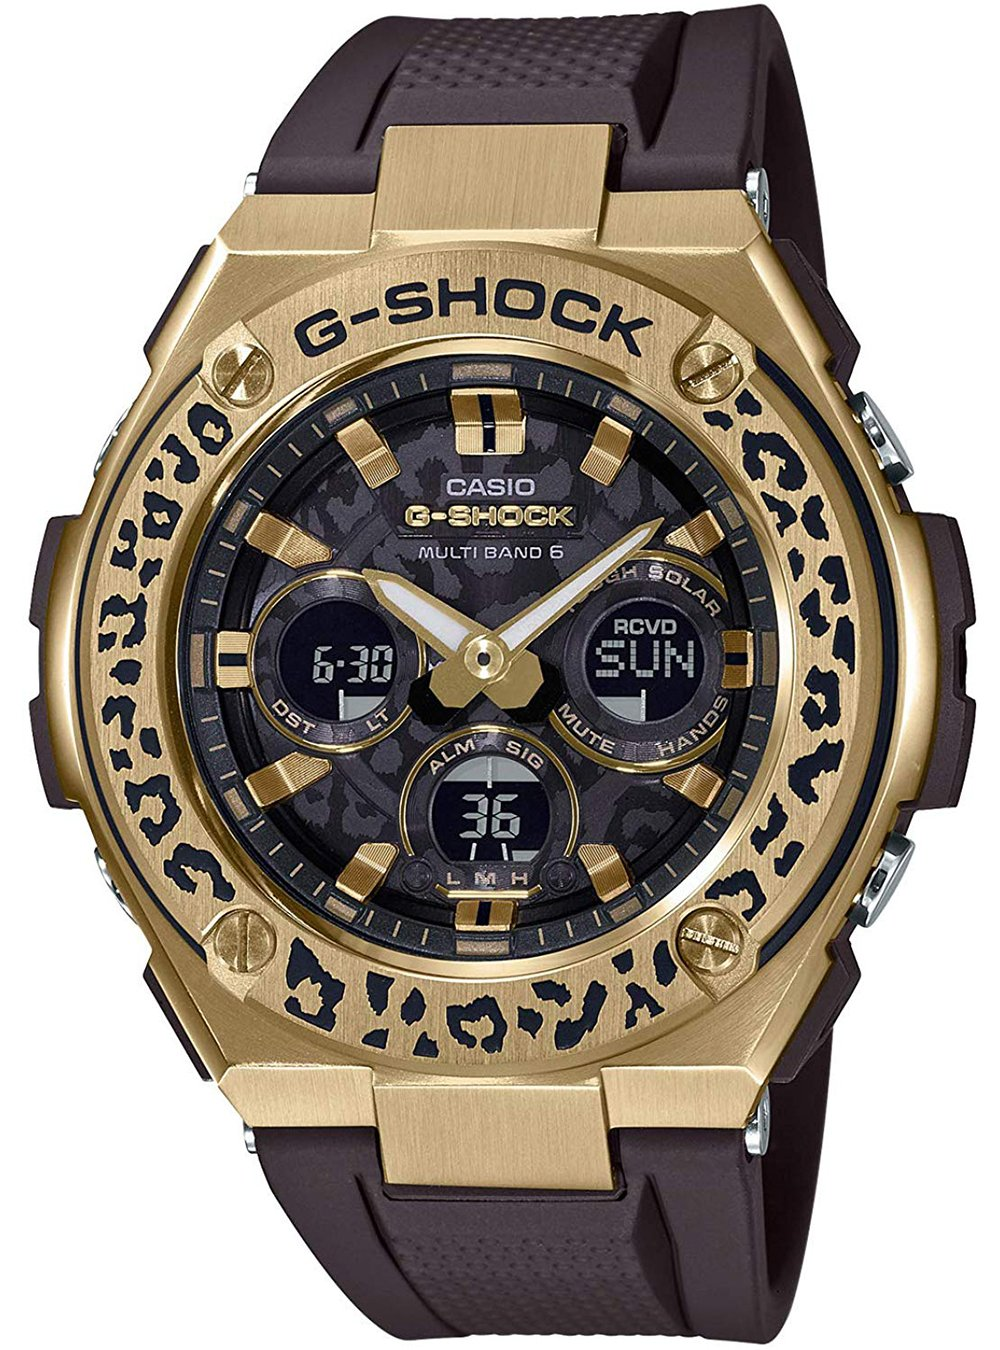 CASIO G-SHOCK Love The Sea And The Earth WILDLIFE PROMISING Collaboration GST-W310WLP-1A9JR MENS LIMITED EDITION